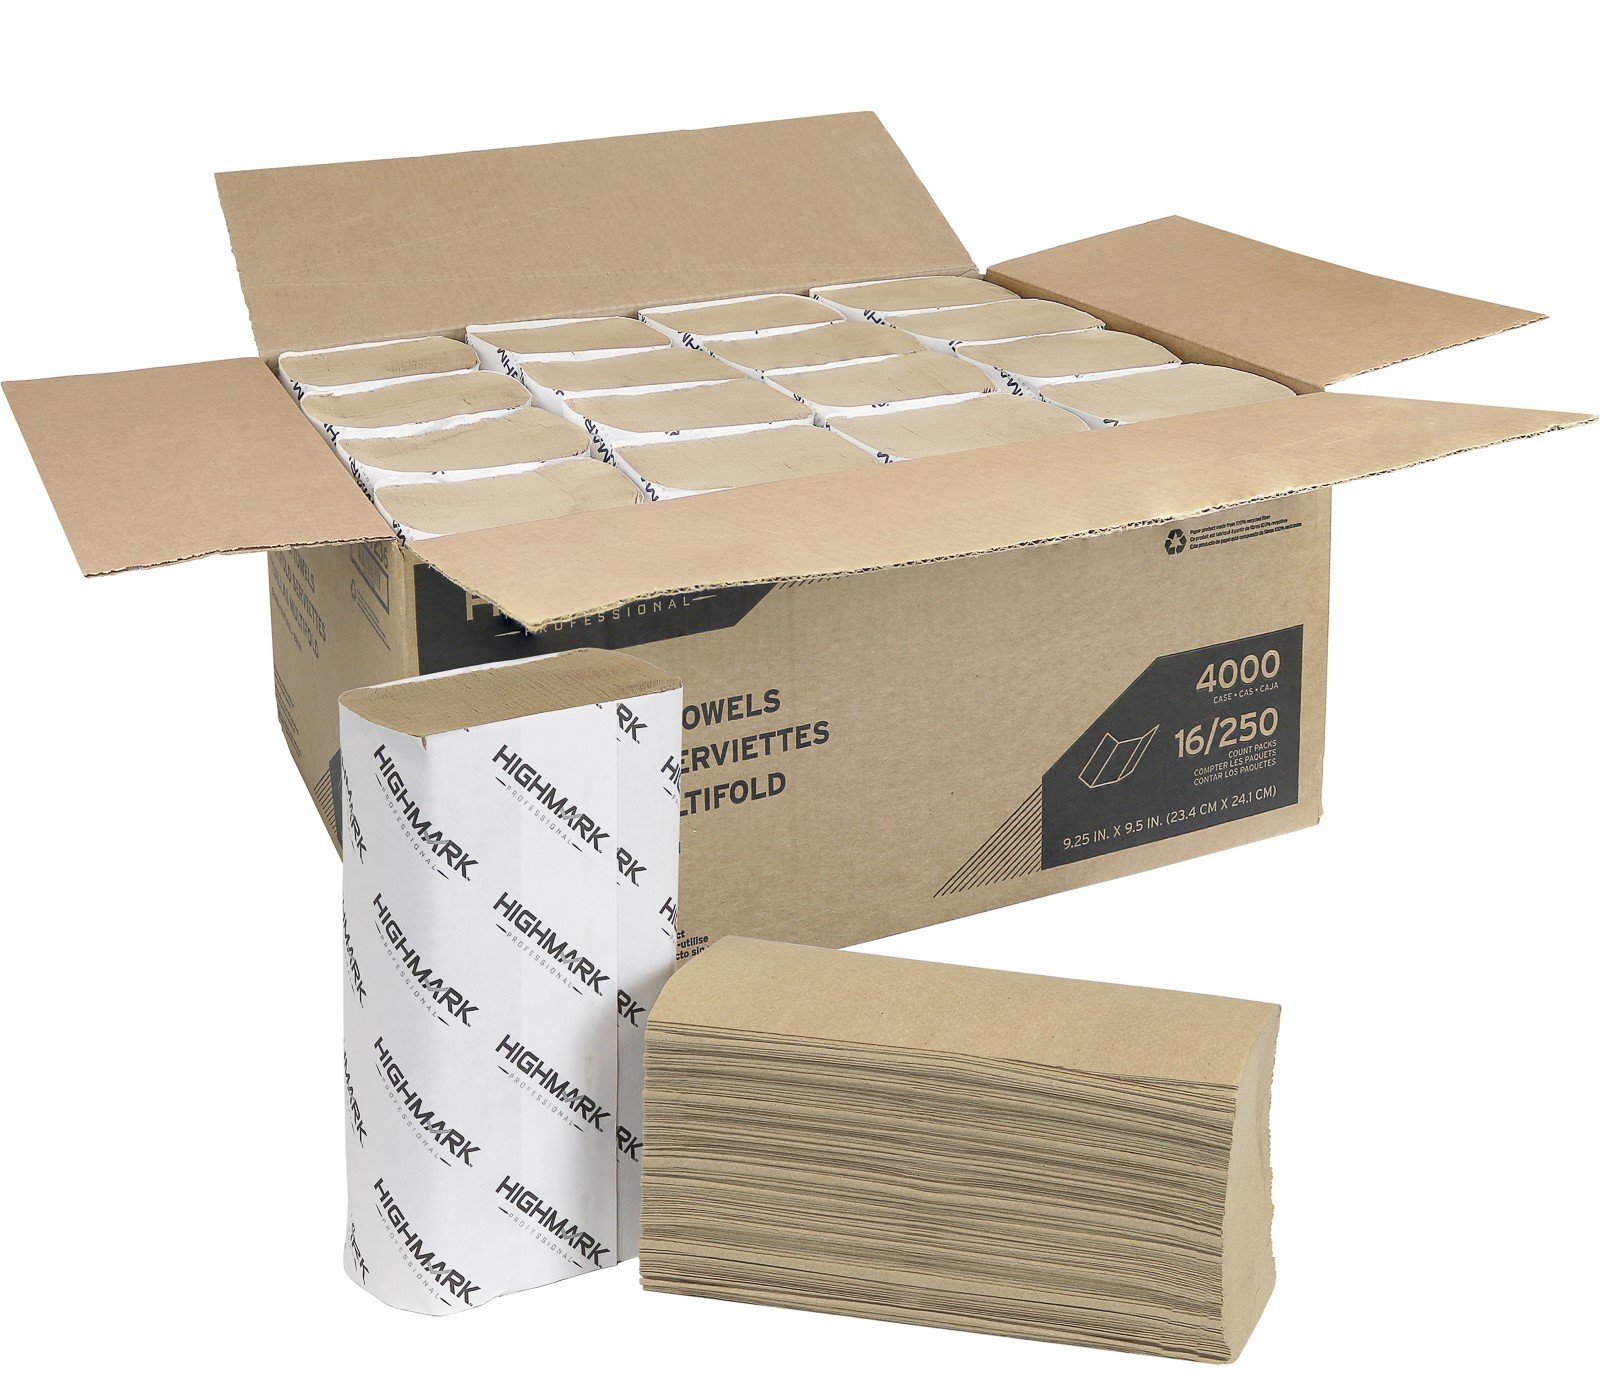 Highmark Professional Multifold Paper Towels, Brown, 4000 Towels, 250 Towels Per Sleeve Case Of 16 Packets